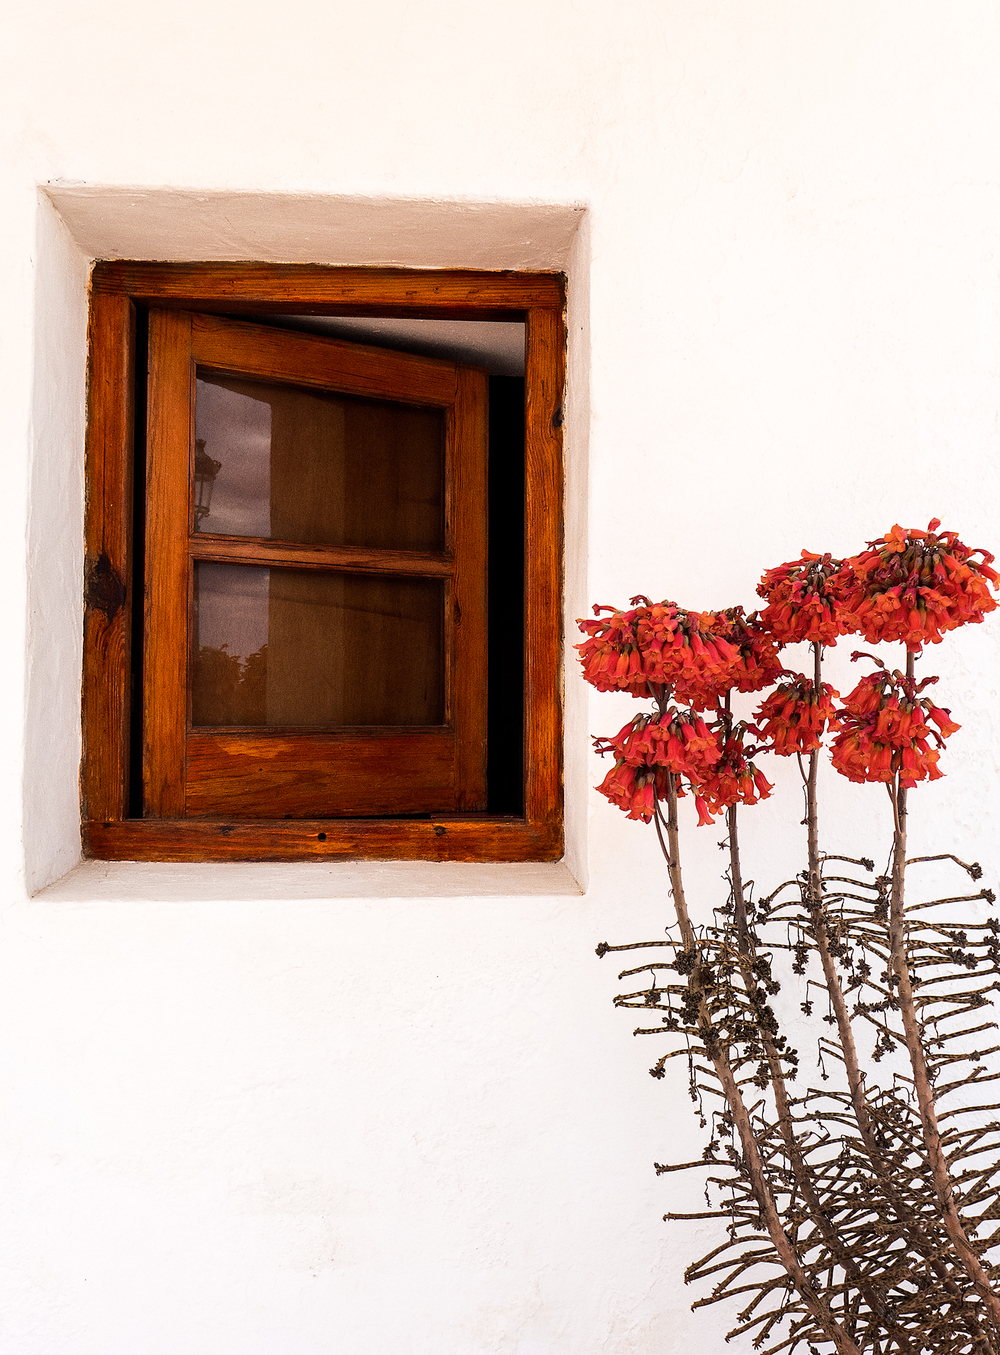 window_11x15 panel box.jpg